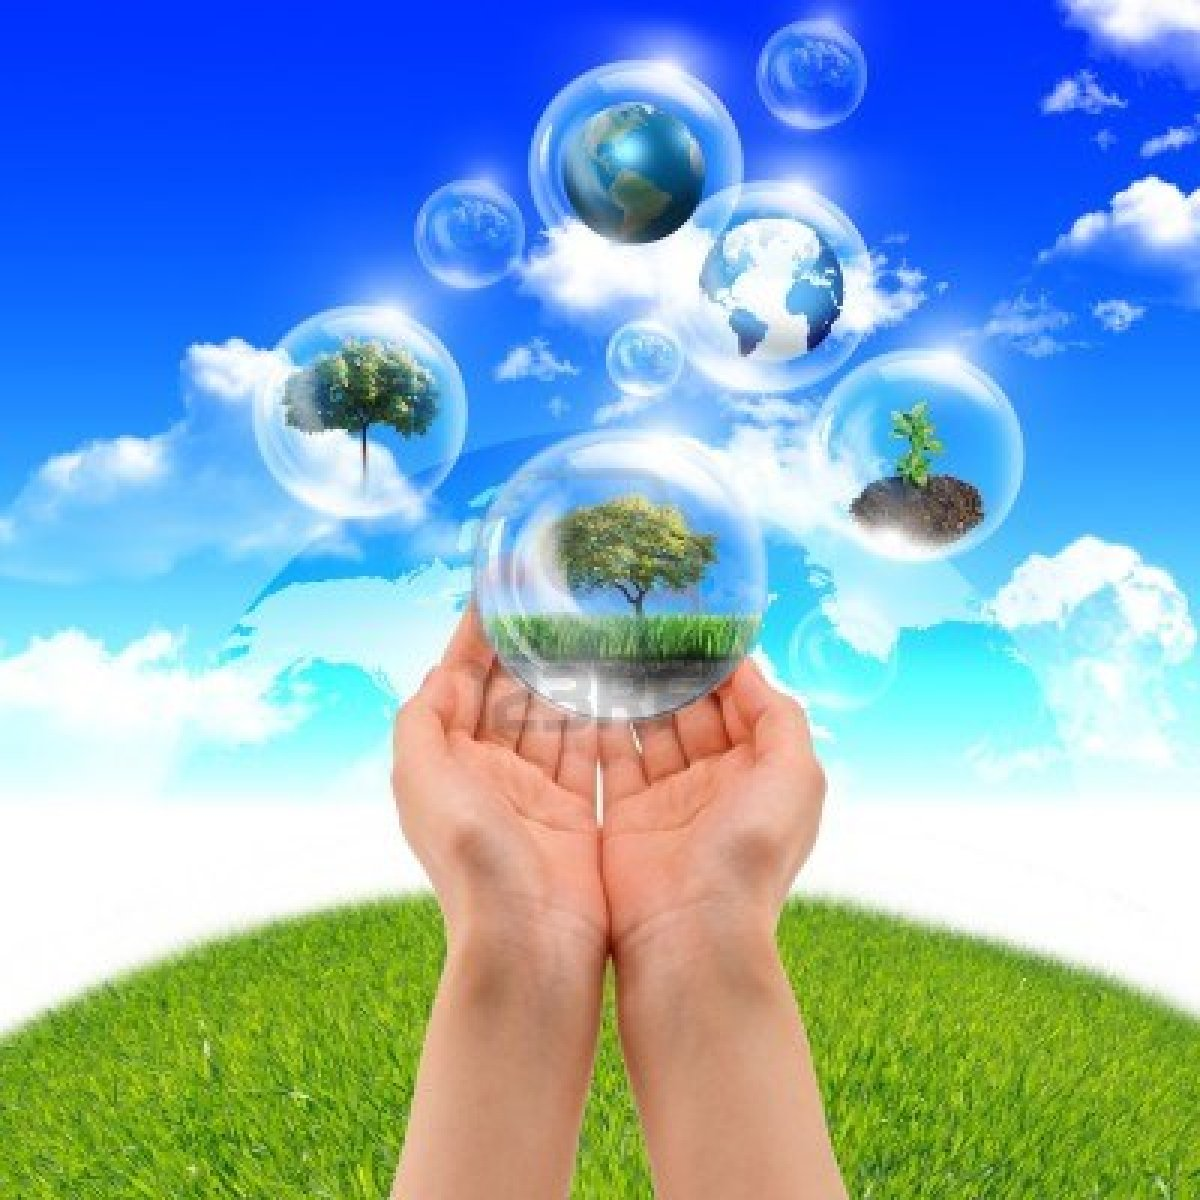 essay on environmental protection and nature conservation essay on environmental protection and nature conservation careers